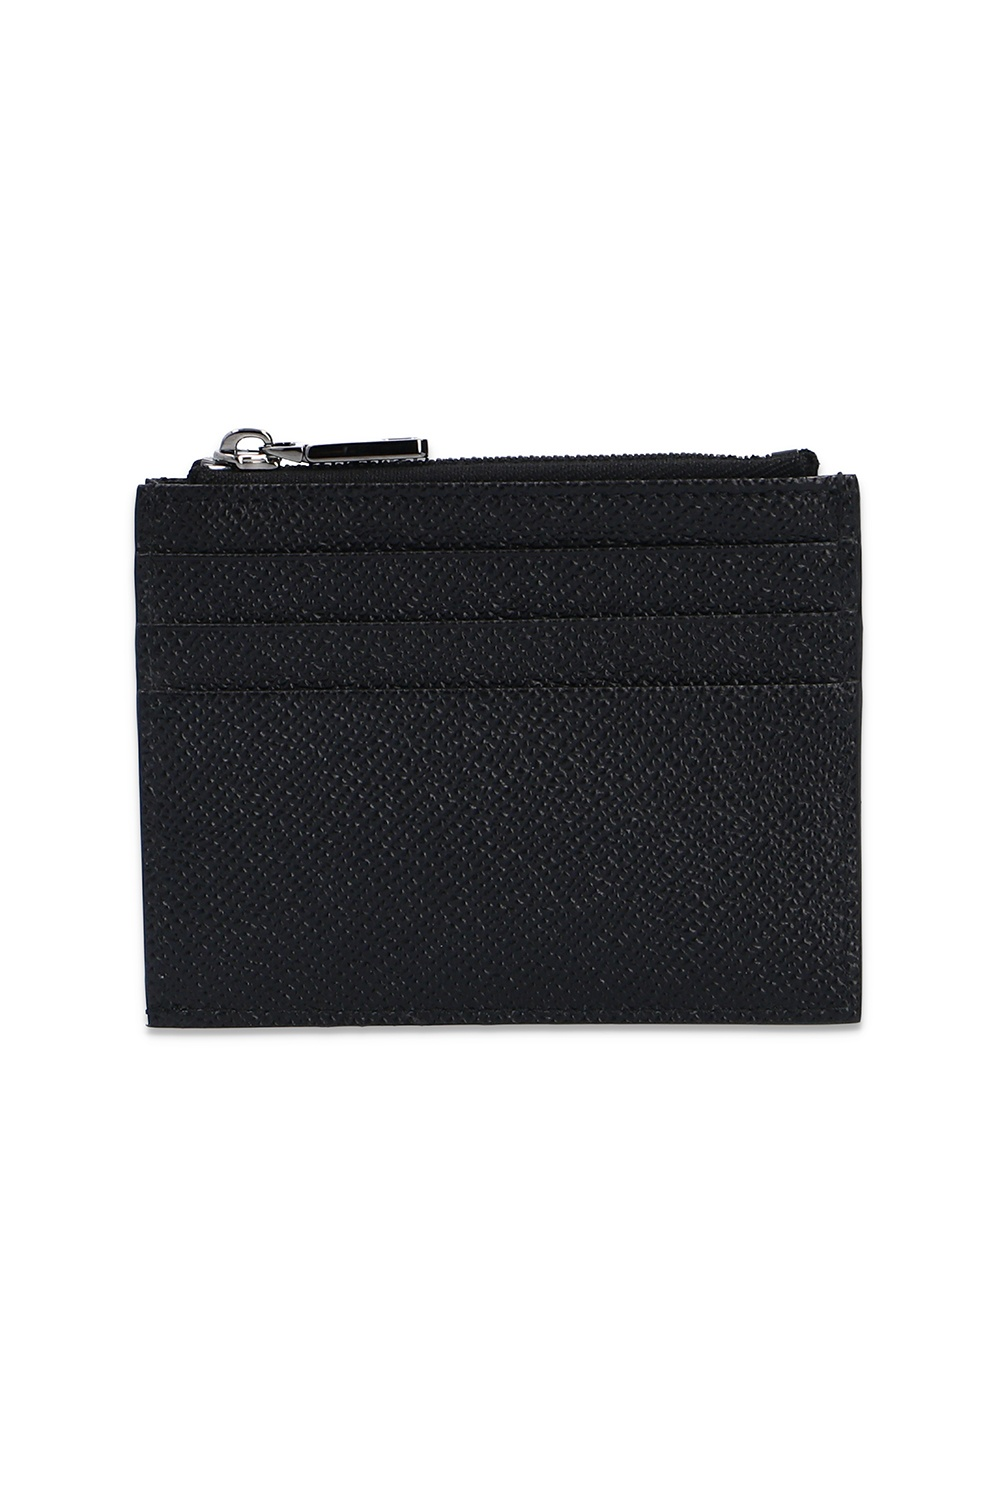 Dolce & Gabbana Folding card case